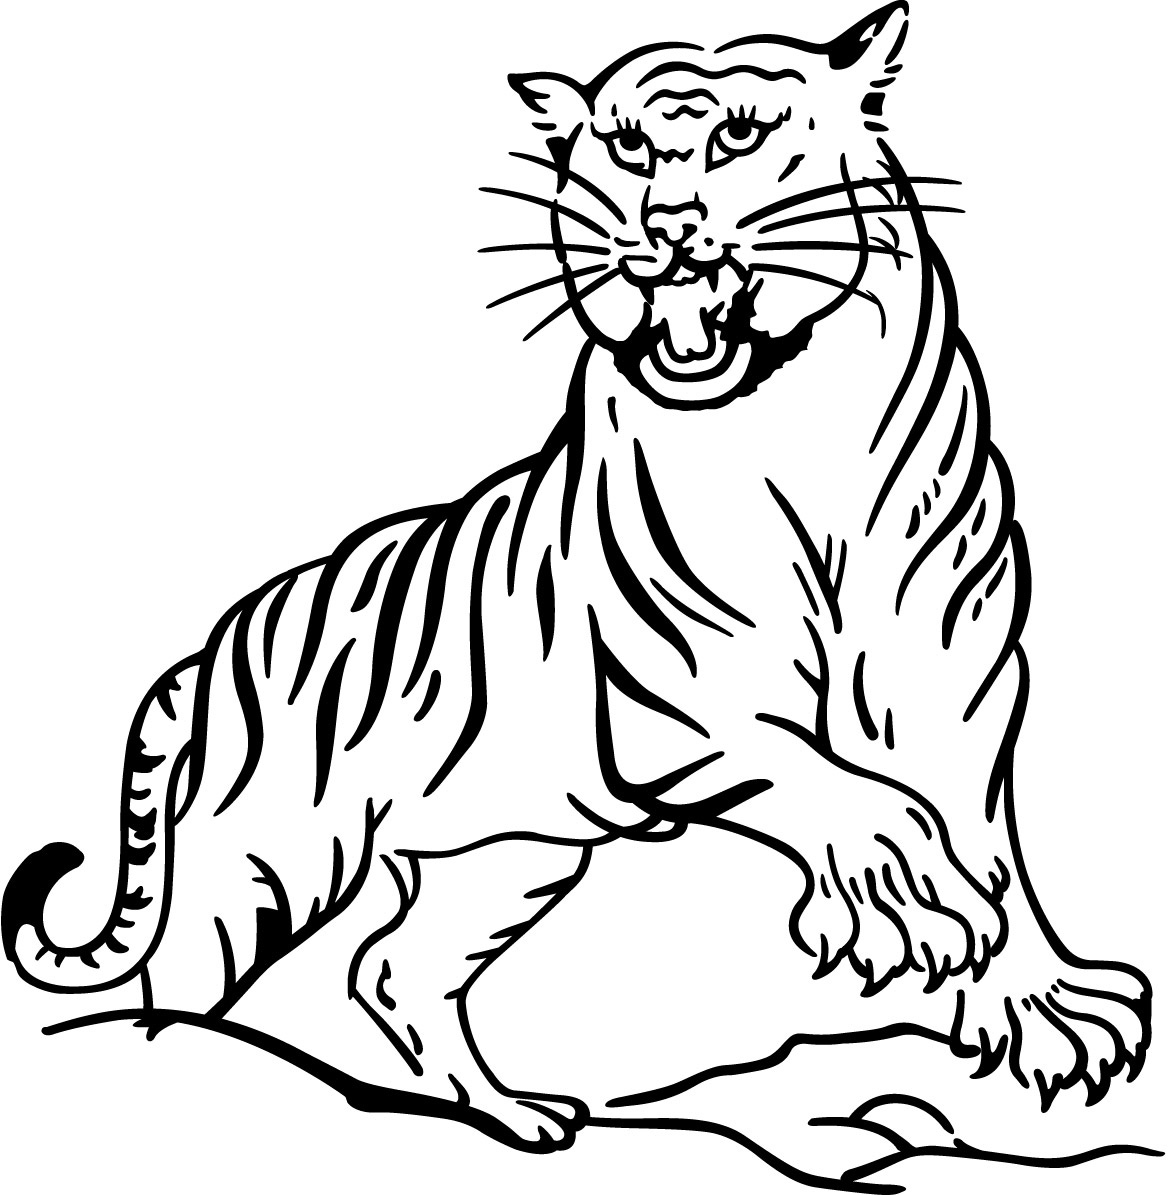 coloring page tiger the cutest baby tiger coloring page free printable coloring tiger page